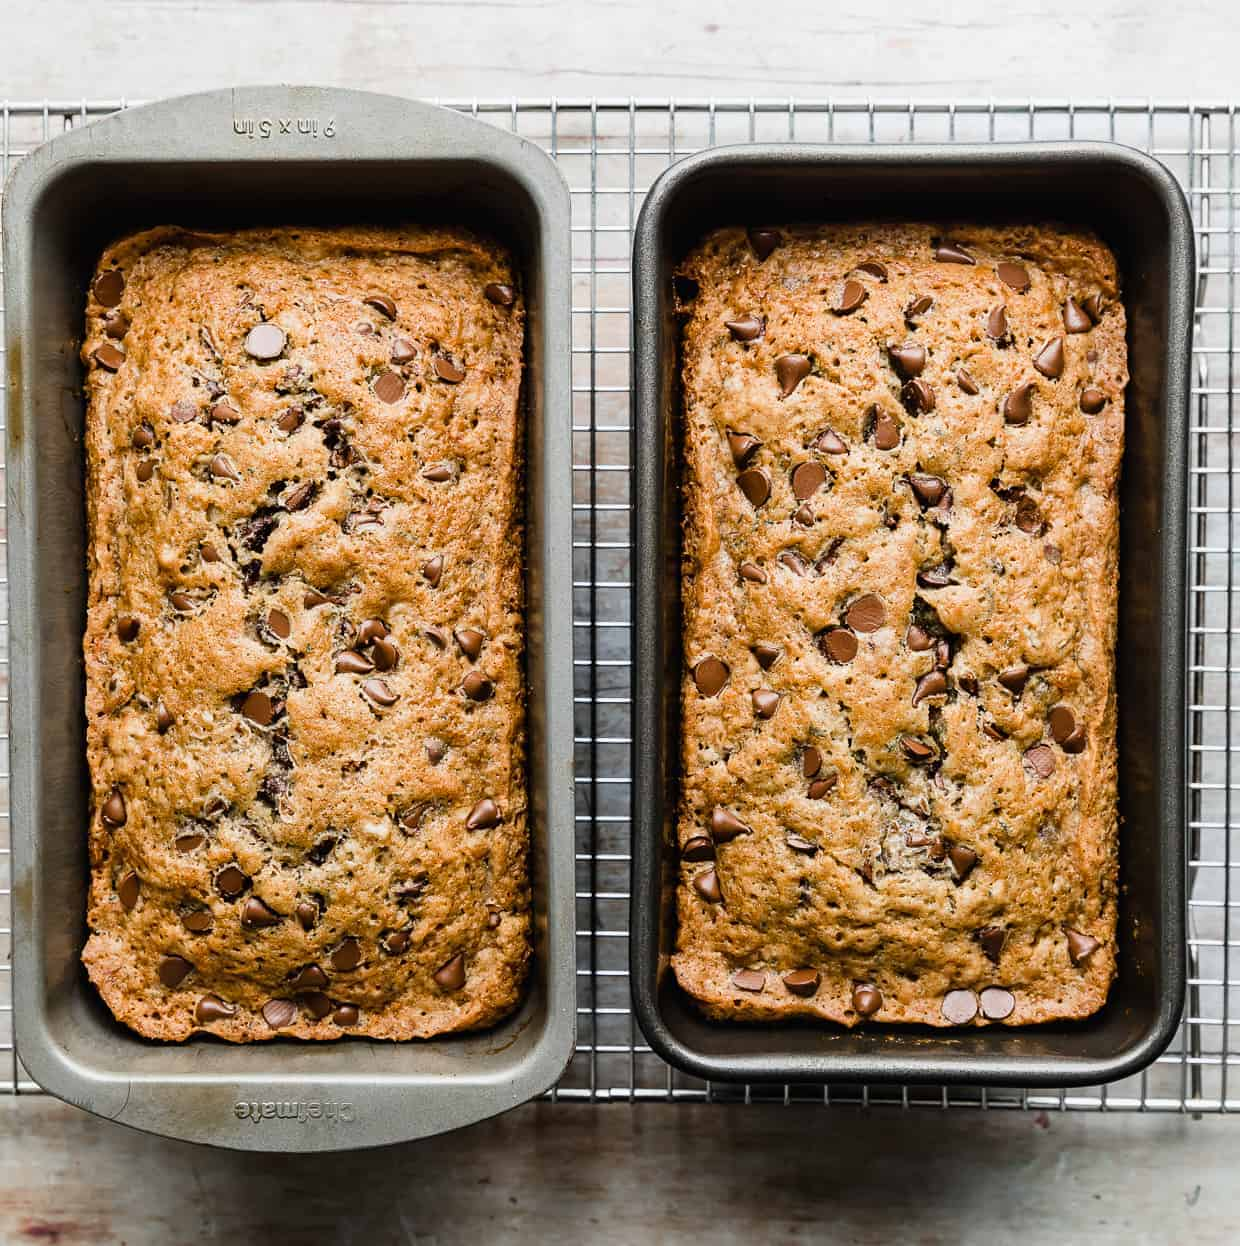 Baked golden brown Chocolate Chip Zucchini Bread in two bread pans, side by side.